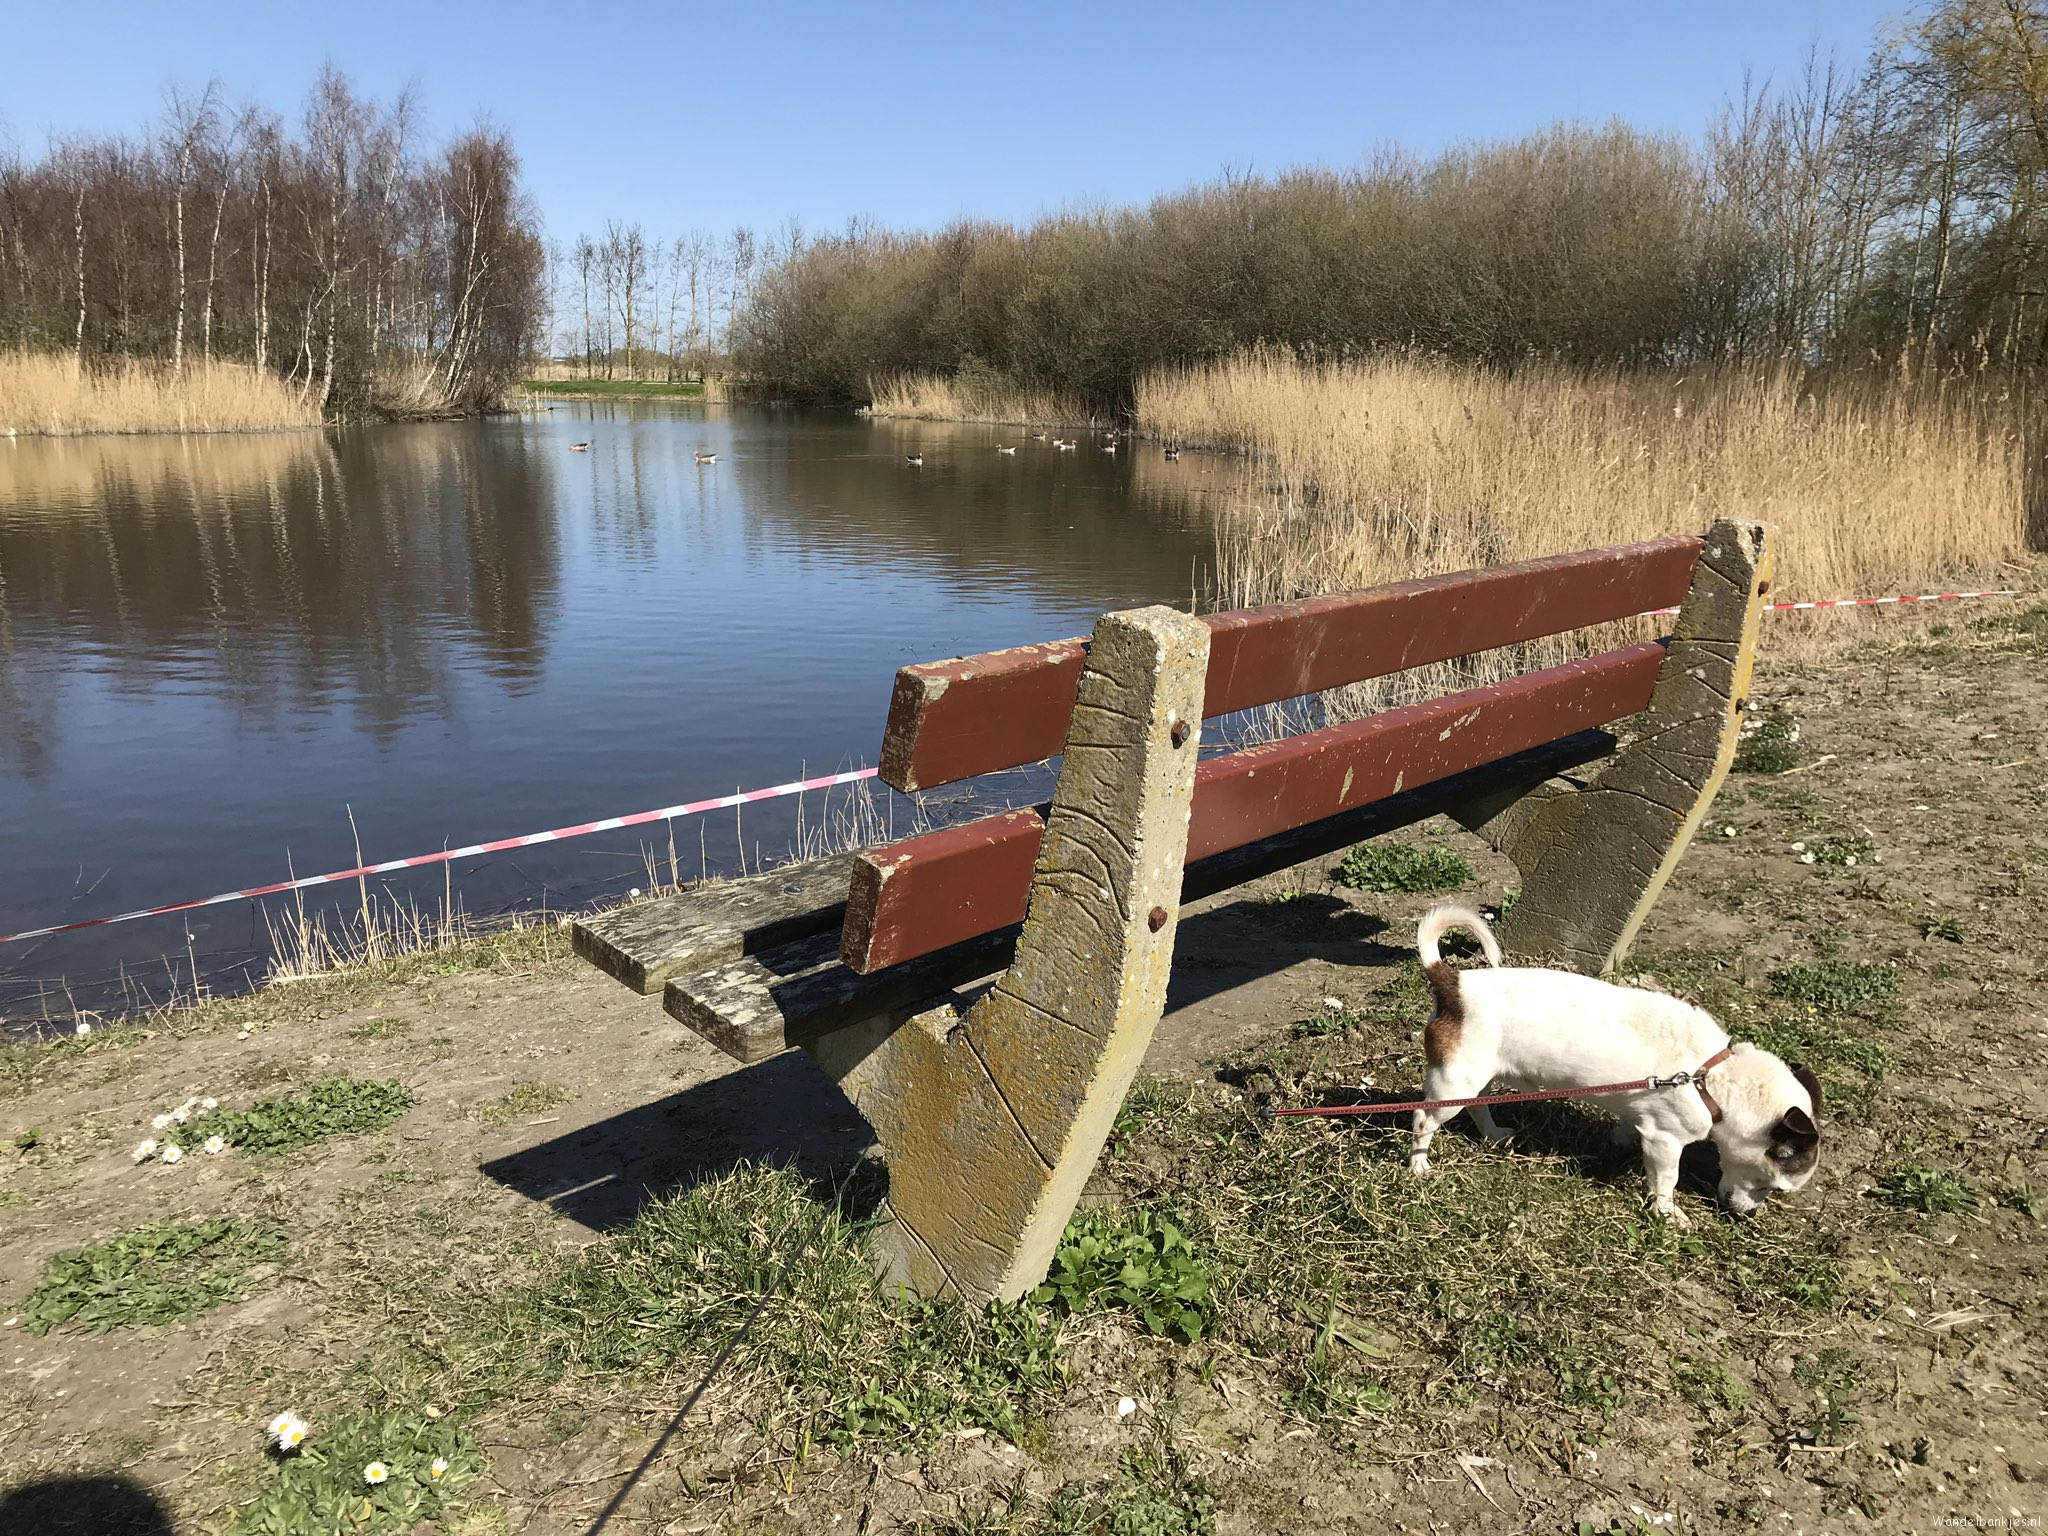 rt-peterboomsma-for-walking benches-even-the-dog-walk-in-the-hemmemapark-in-berltsum-https-t-co-fl8jrj3iey